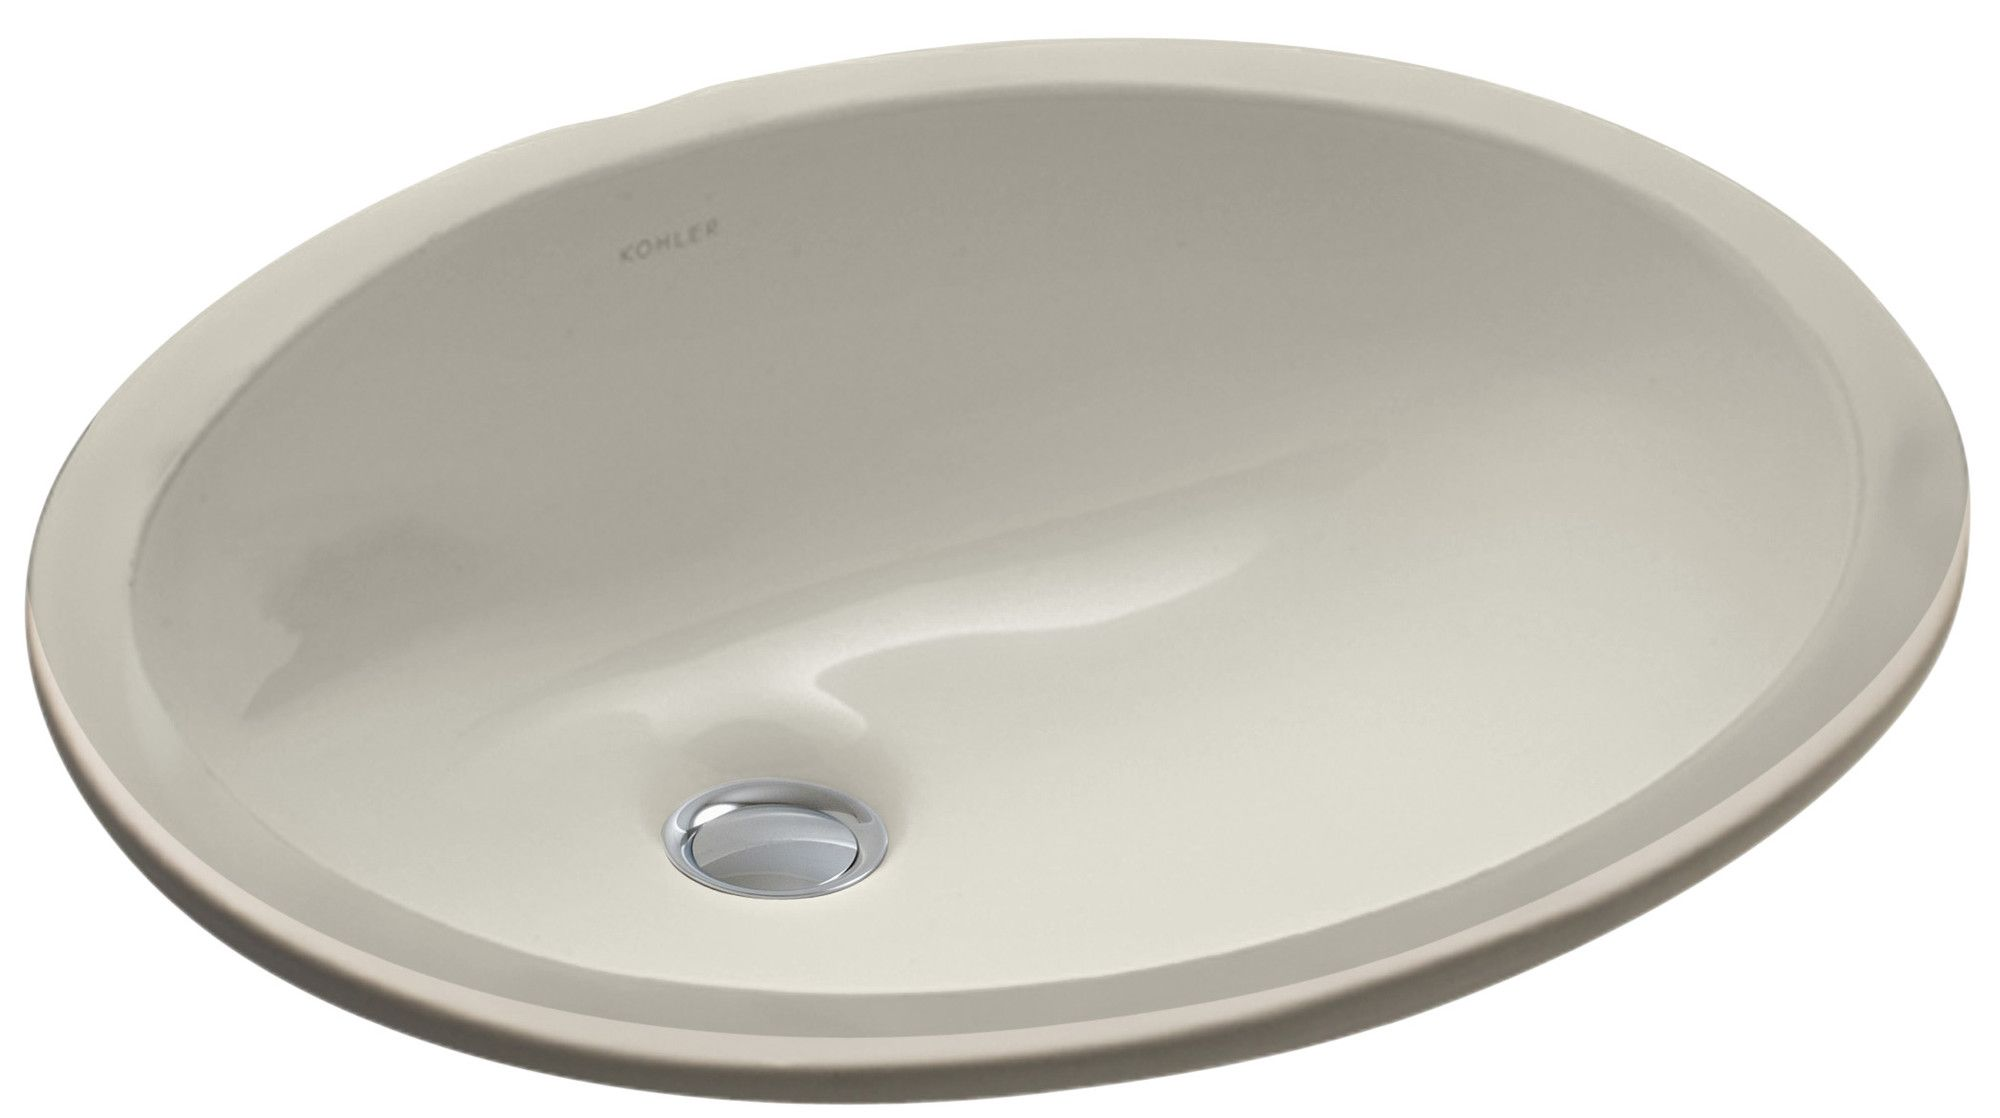 Caxton Ceramic Oval Undermount Bathroom Sink With Overflow